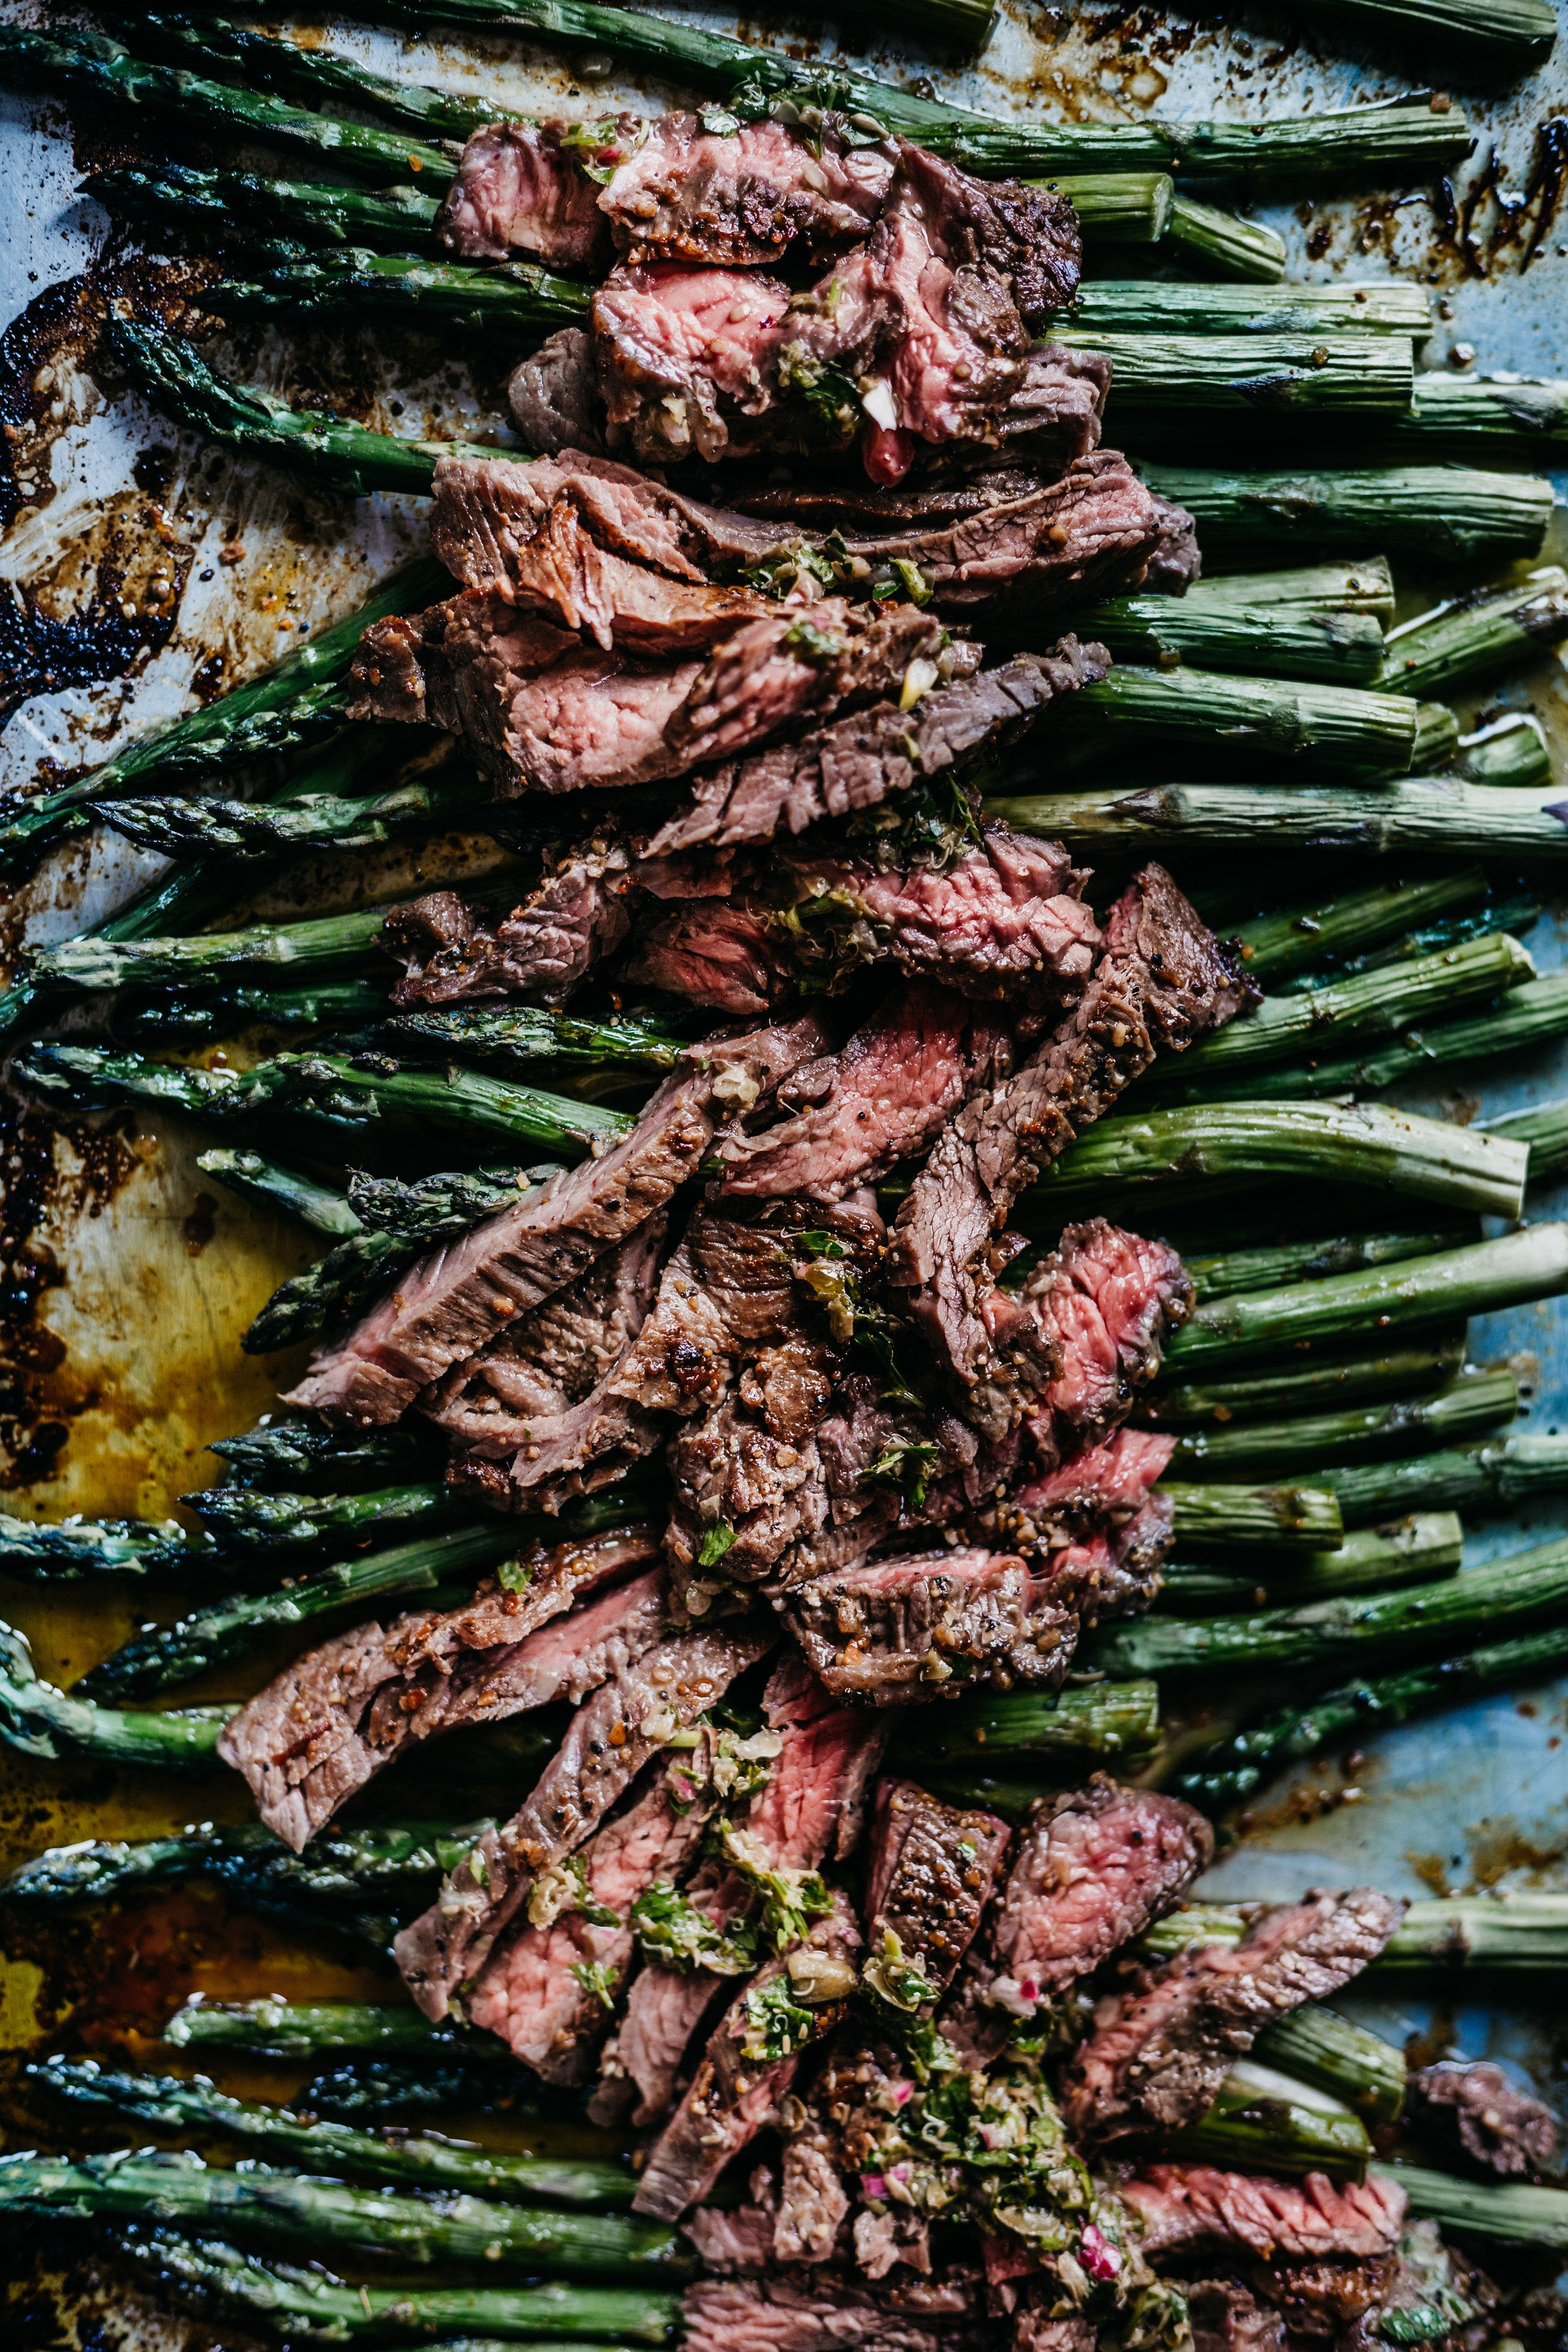 Buttery-Garlic Steak with Asparagus and Salsa Verde